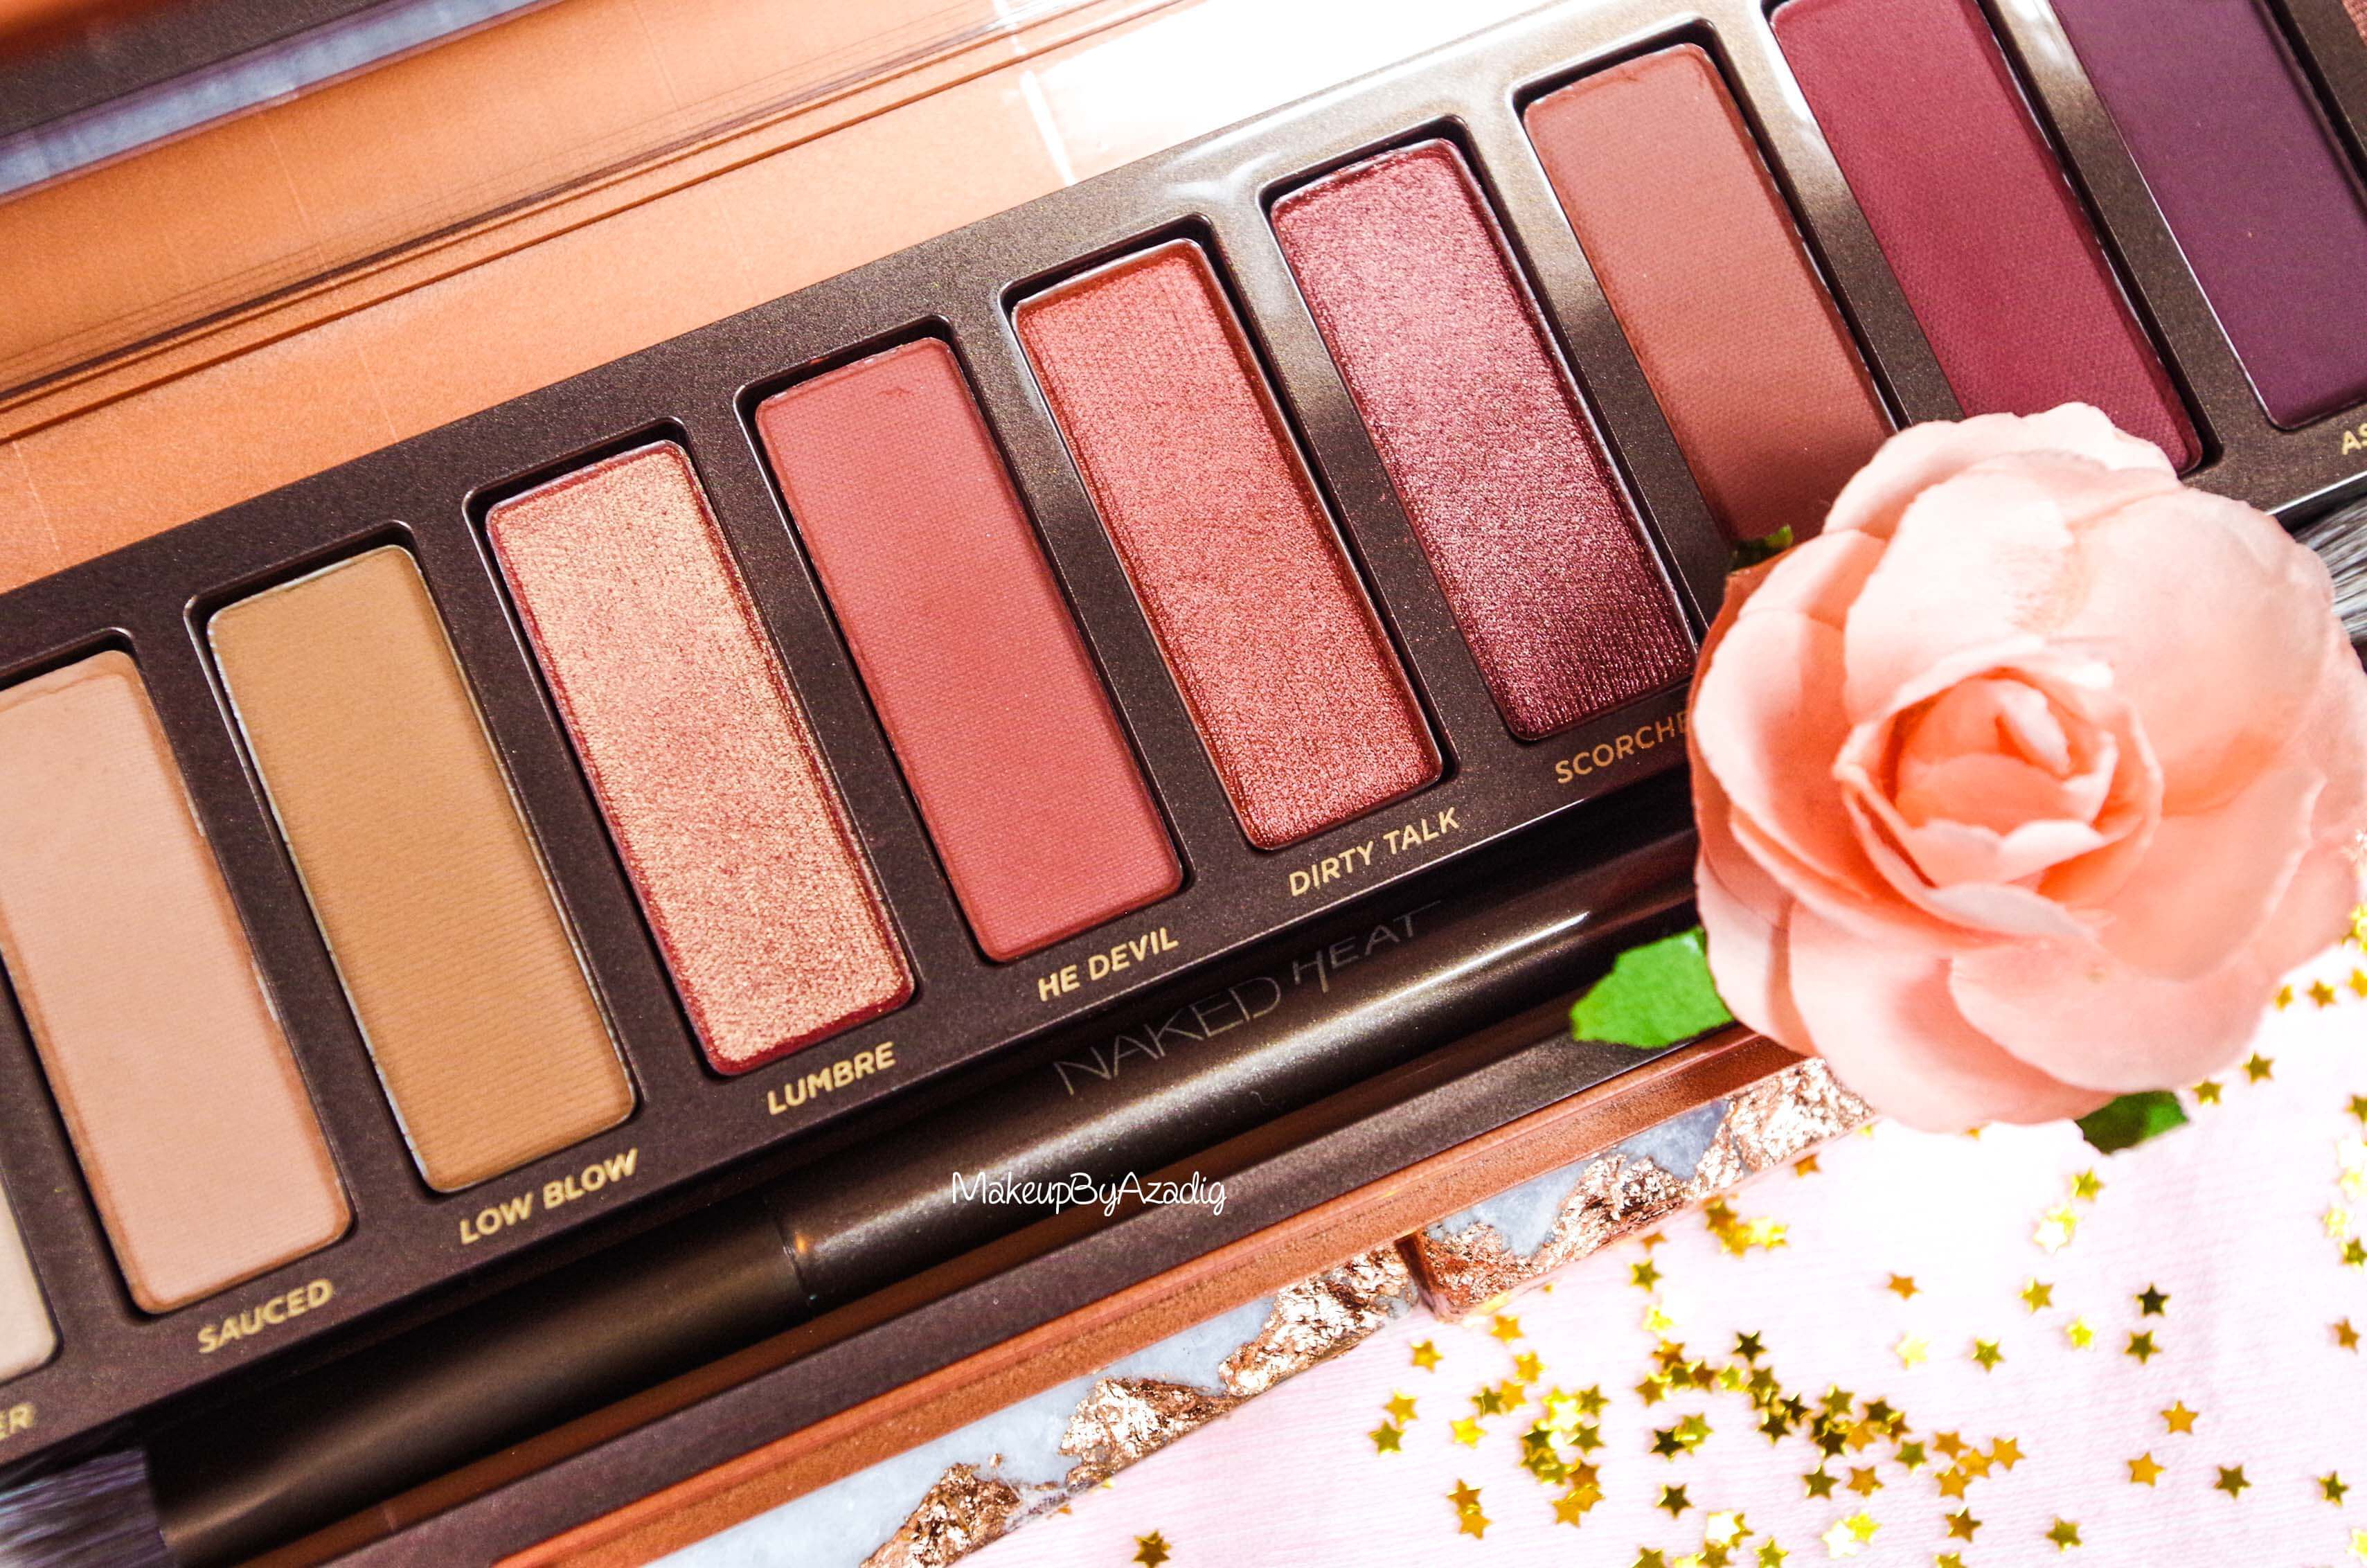 revue-review-nouvelle-palette-naked-heat-urban-decay-sephora-avis-prix-france-makeupbyazadig-swatch-zoom